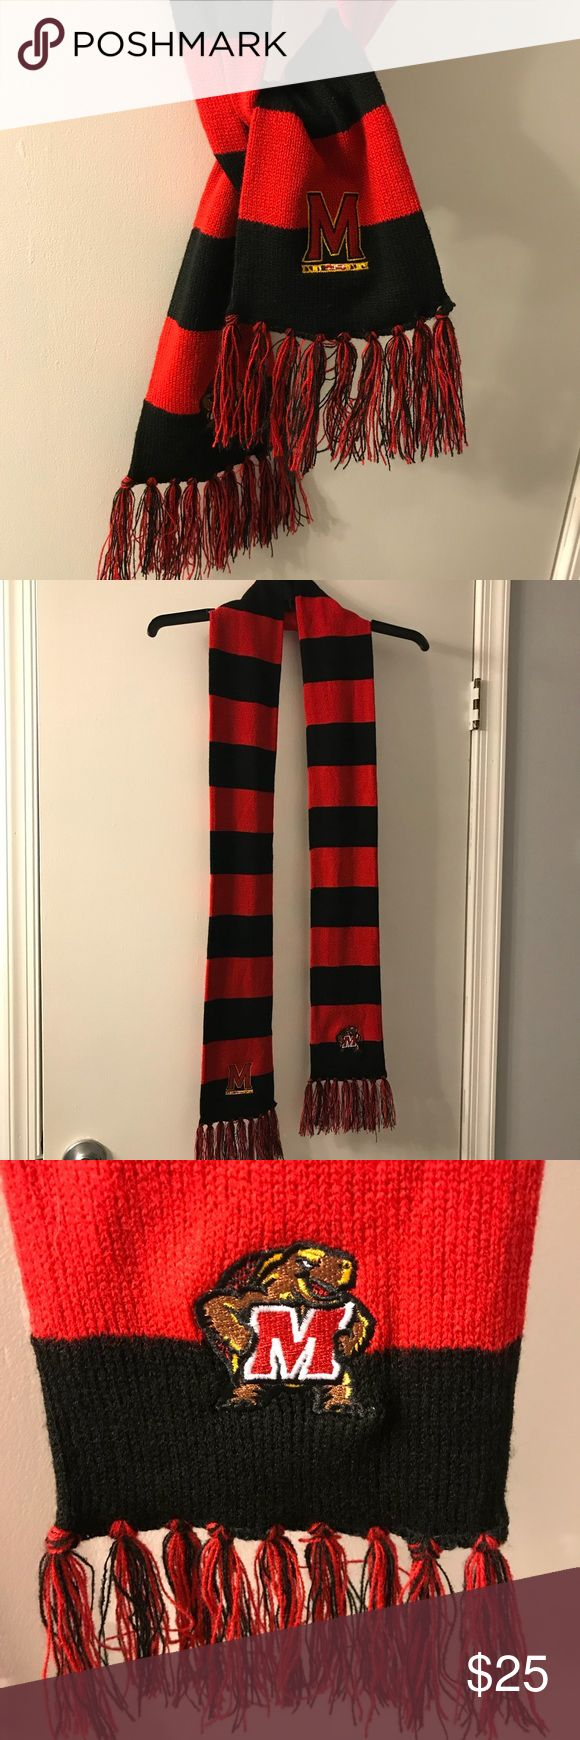 Maryland Winter Scarf University of Maryland Winter Scarf, in perfect condition, never worn. Accessories Scarves & Wraps